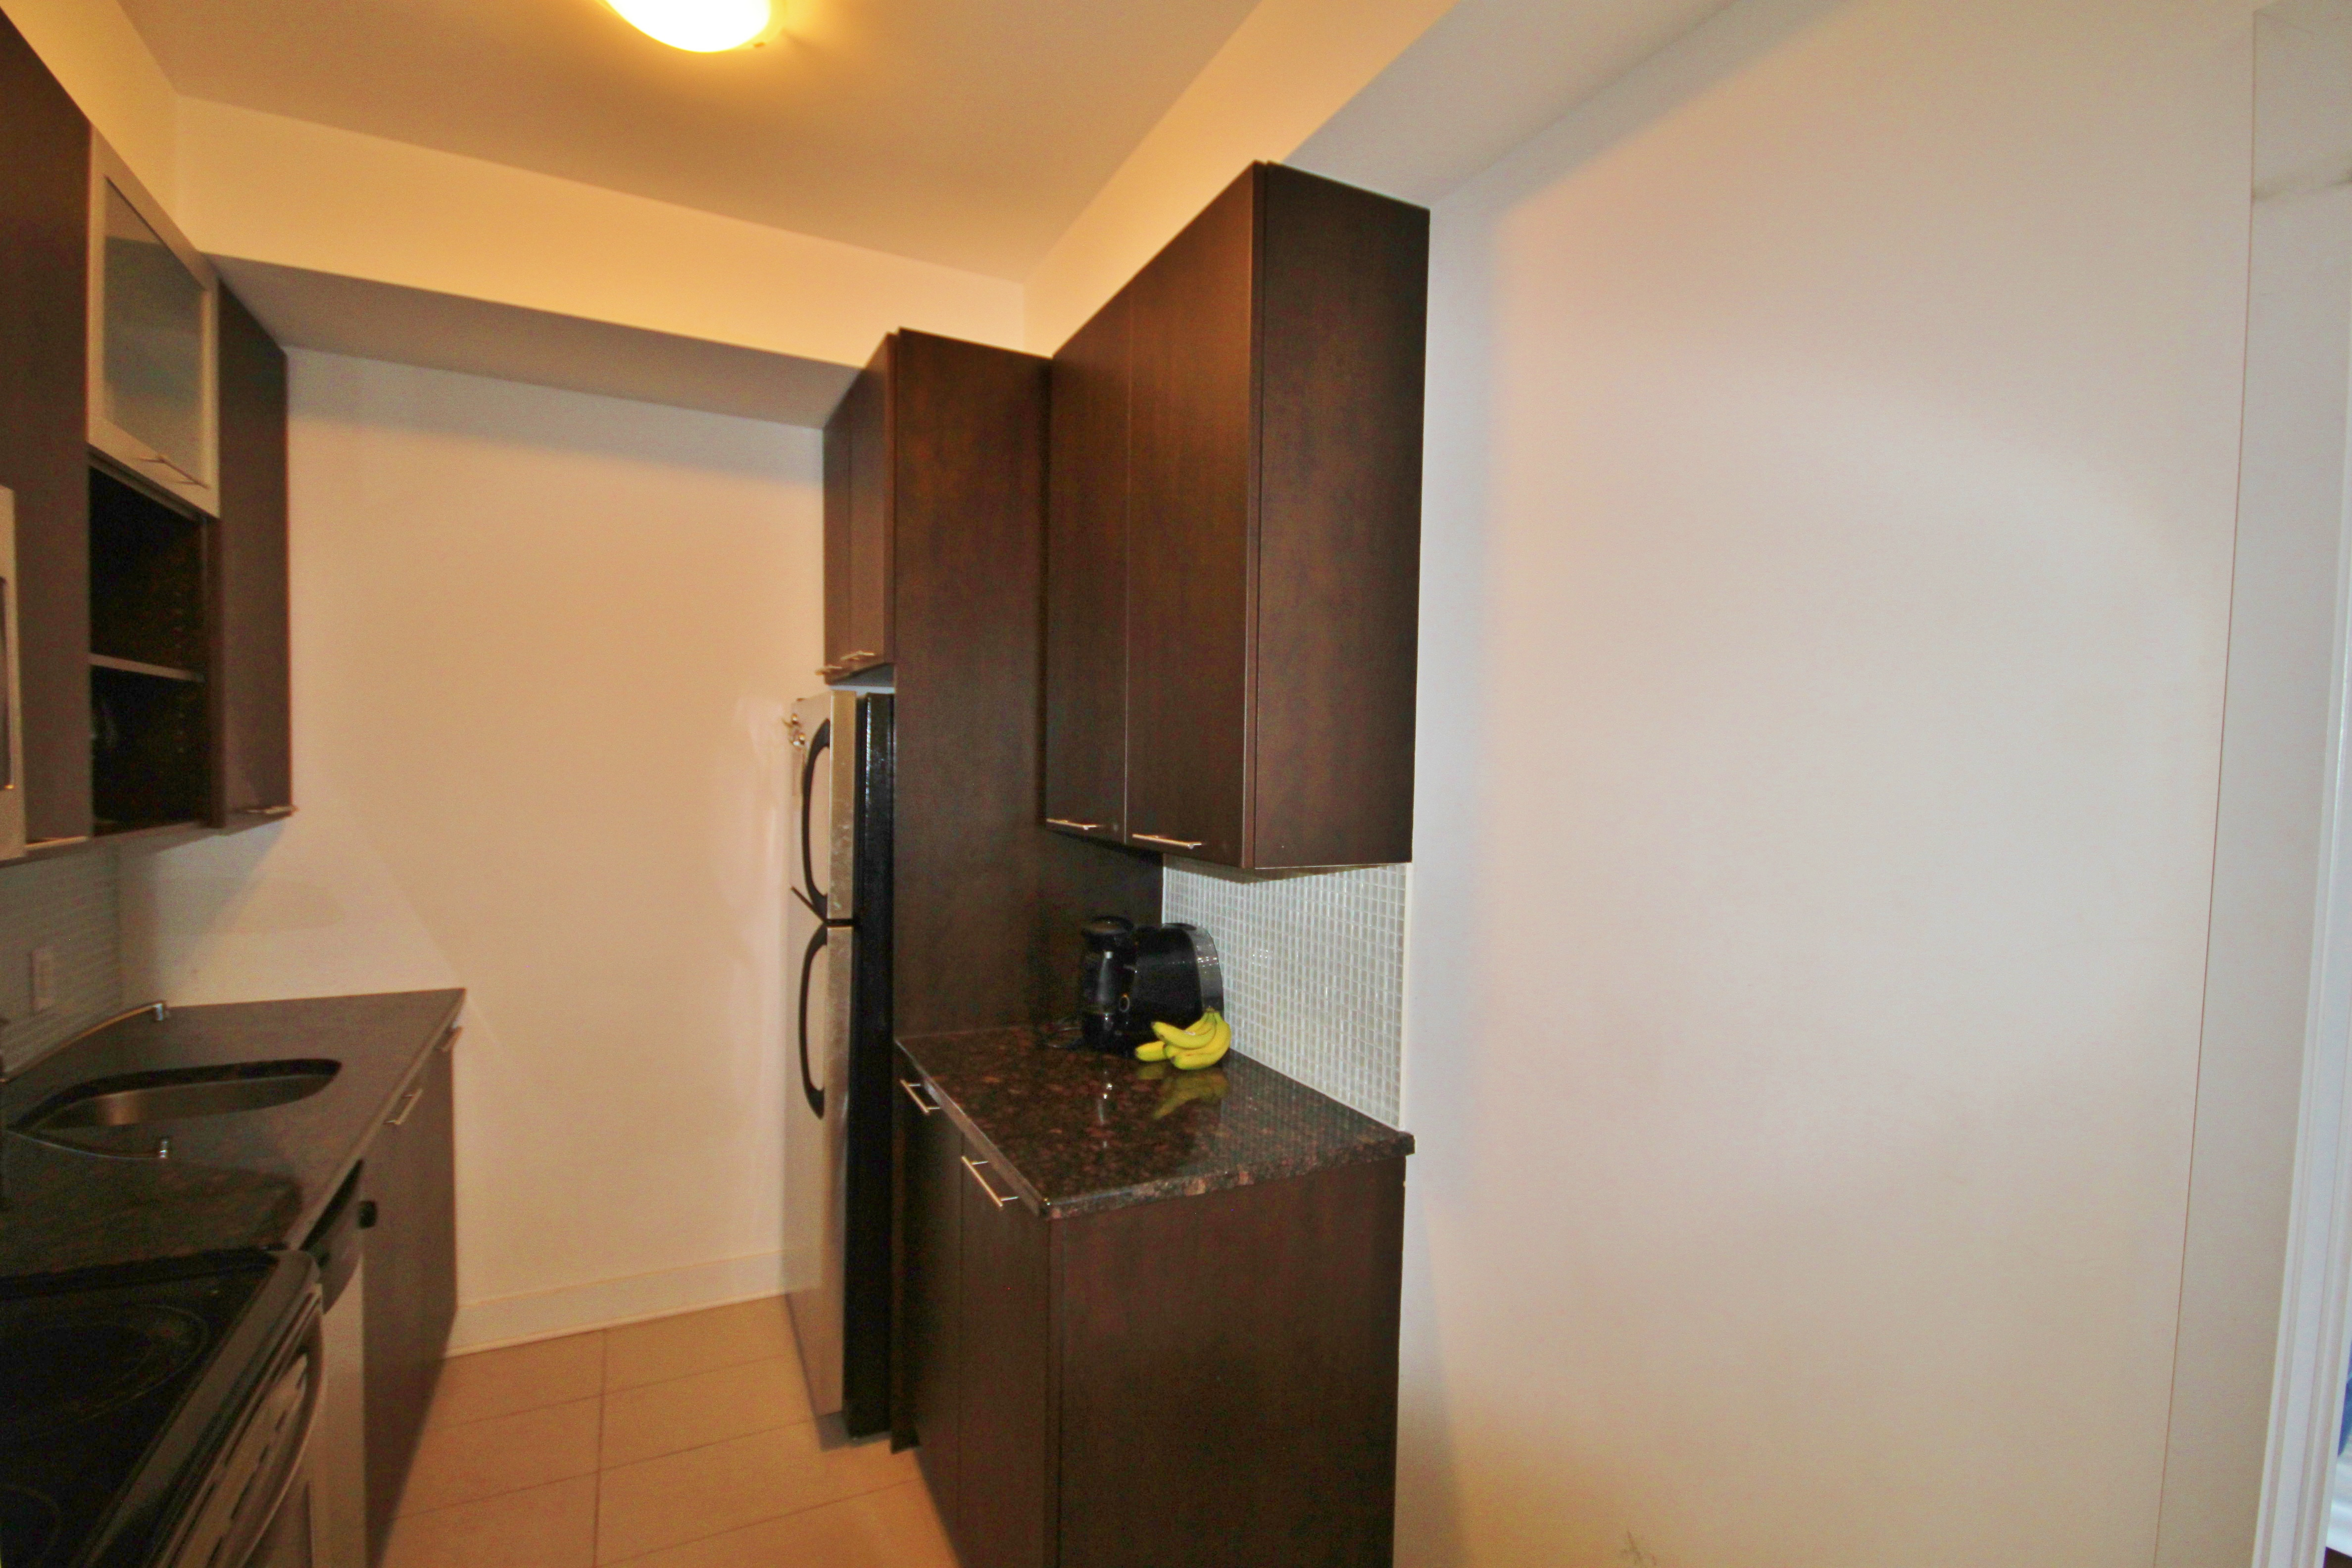 Spacious kitchen area, with room for a small table even.  Granite countertops, loads of cabinet space.